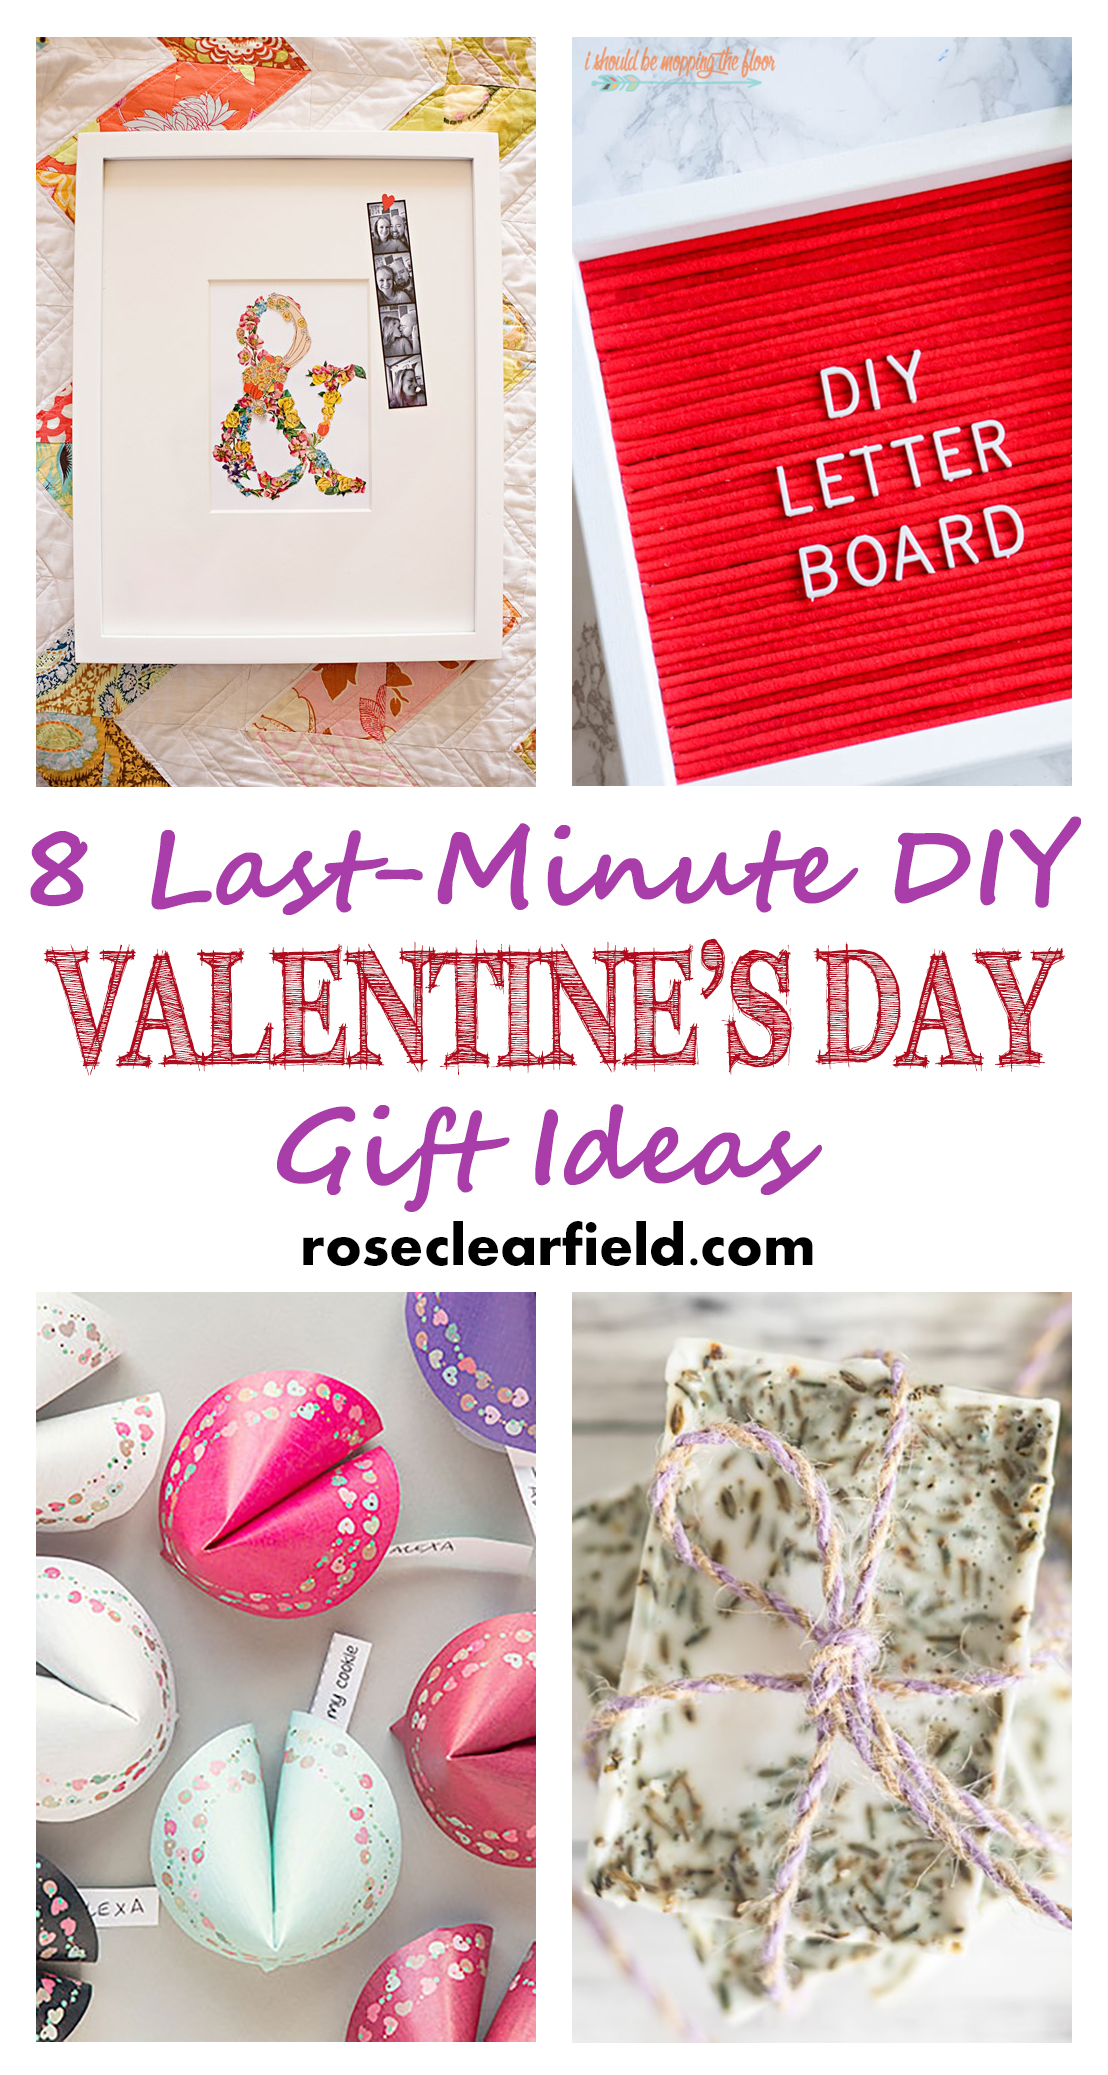 8 Last-Minute DIY Valentine's Day Gift Ideas | http://www.roseclearfield.com